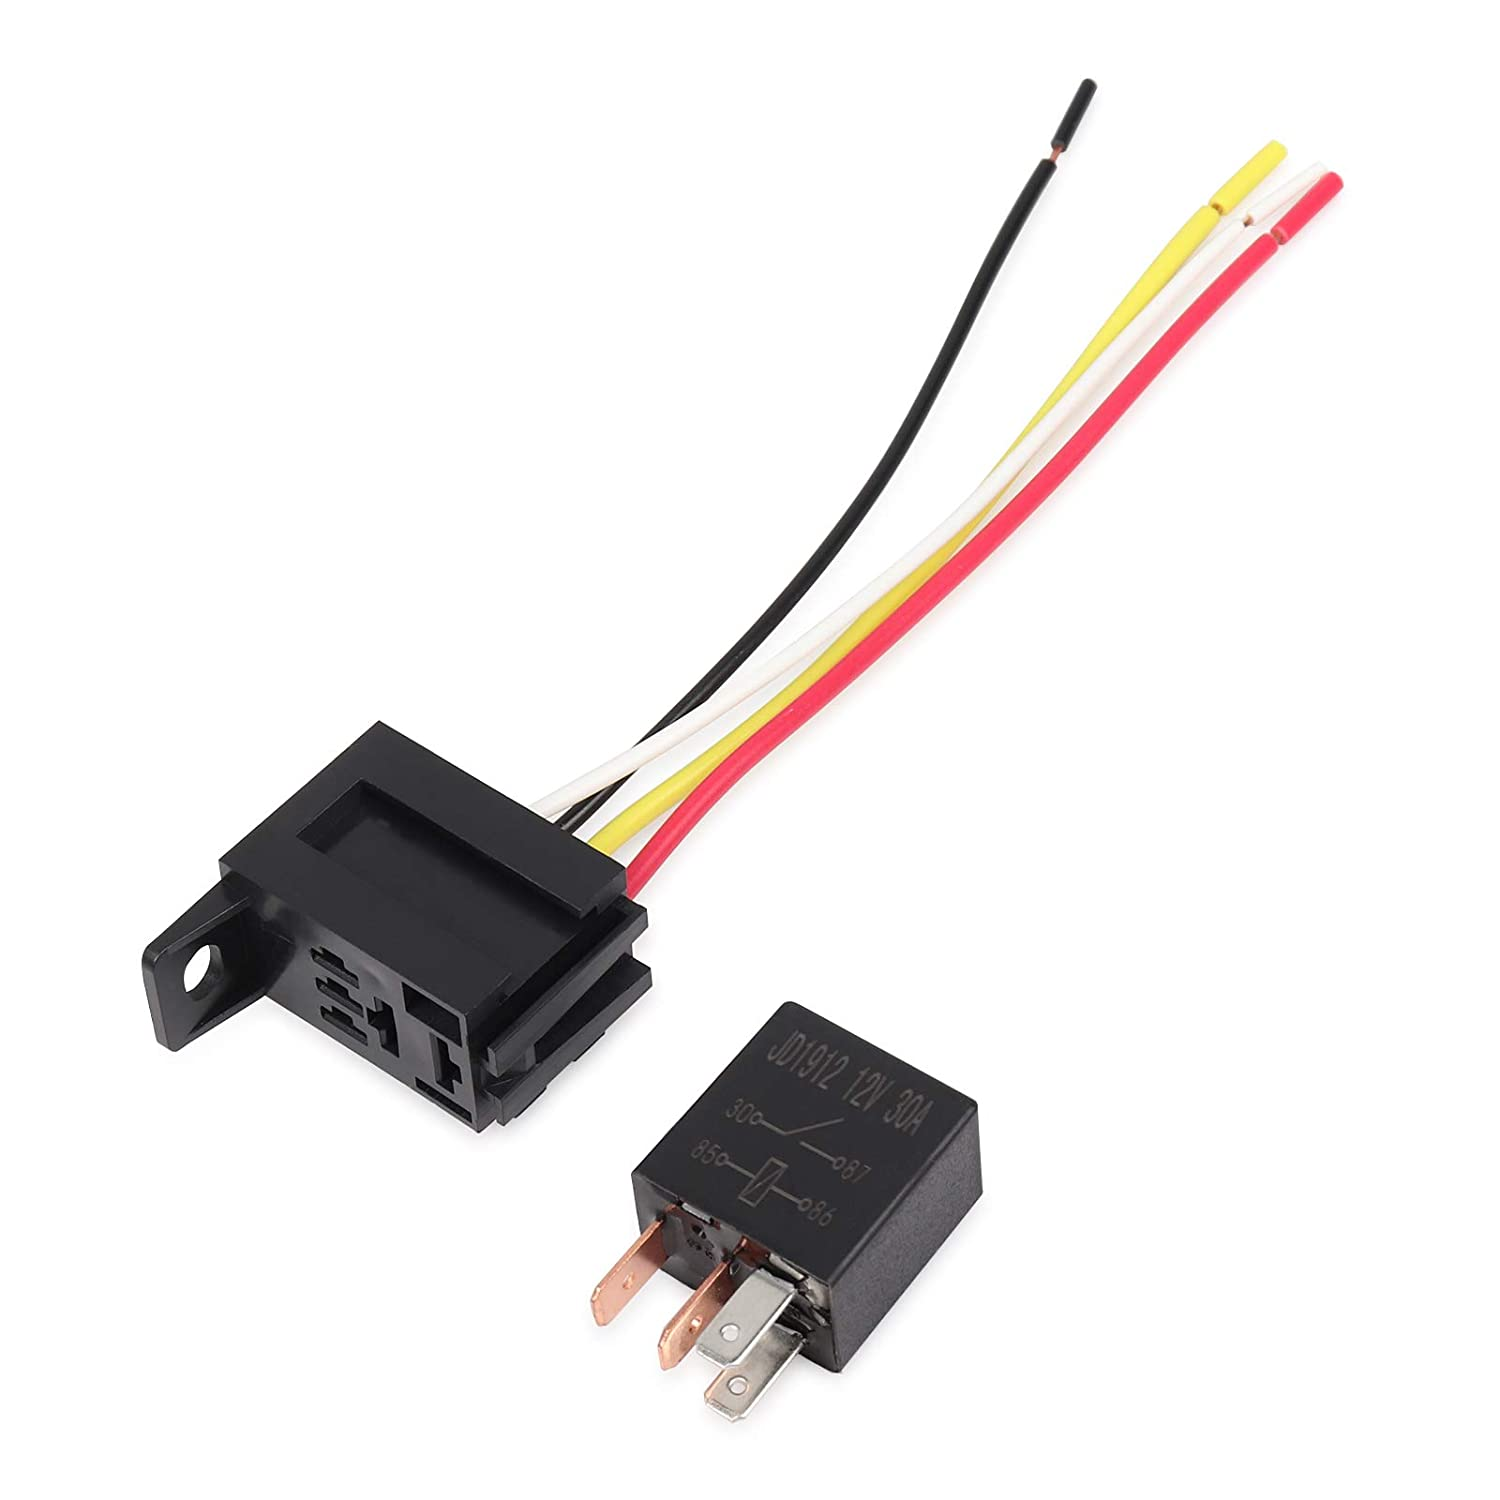 Pack of 2 Ehdis 4 Pin Wires Cable Relay Socket Harness Connector 12VDC 30A SPST Multi-Purpose Heavy Duty Standard Relay Kits for Car Automotive